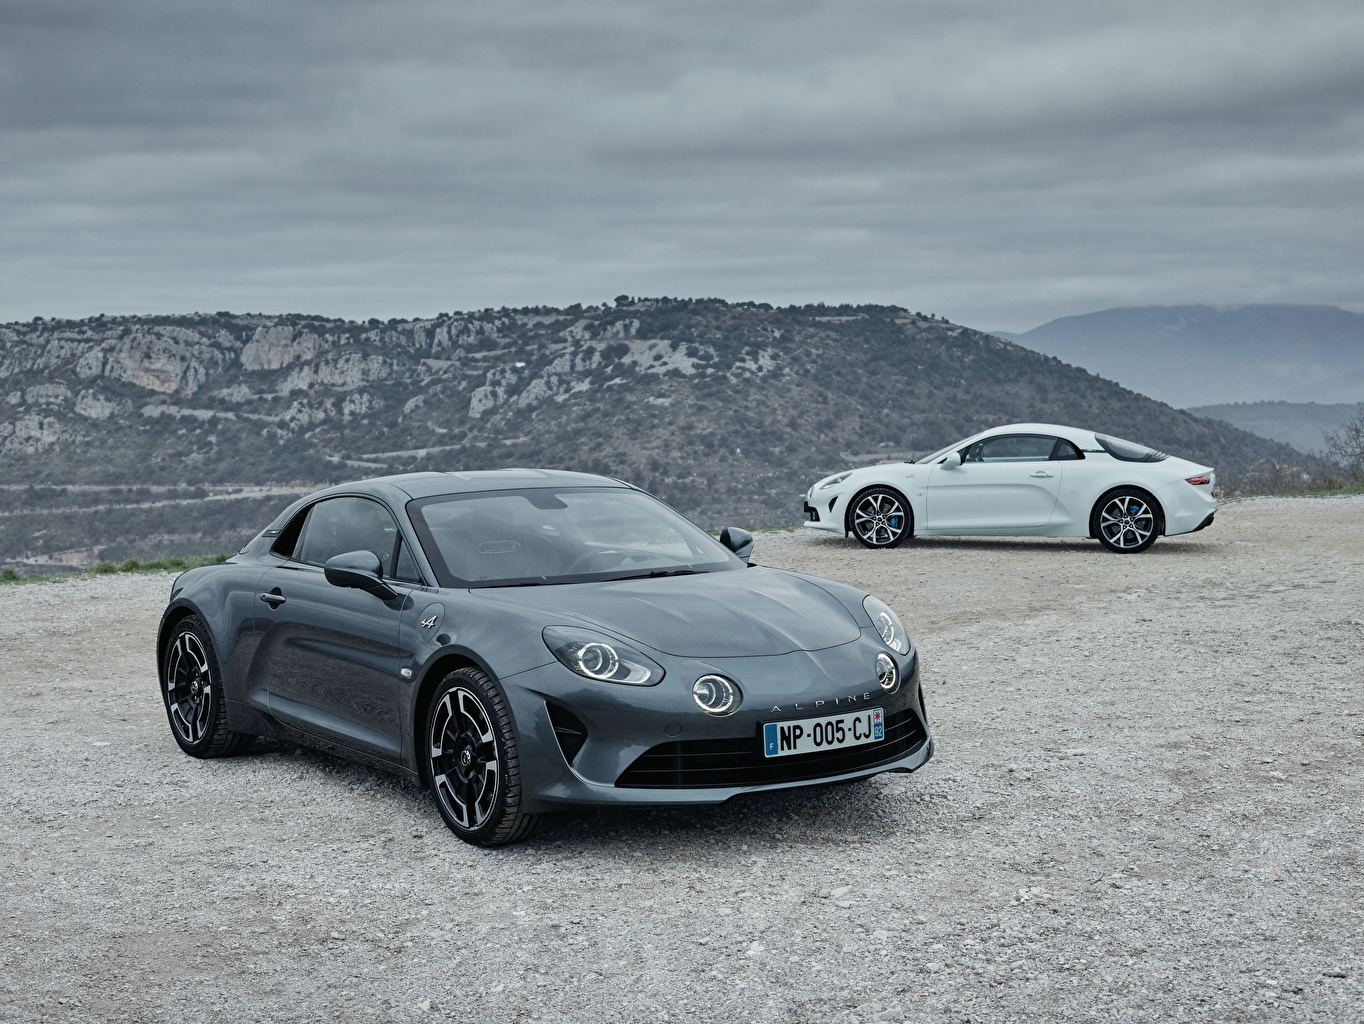 Picture Renault Alpine A110 Legende, Alpine A110 Pure 2 Cars Two auto automobile